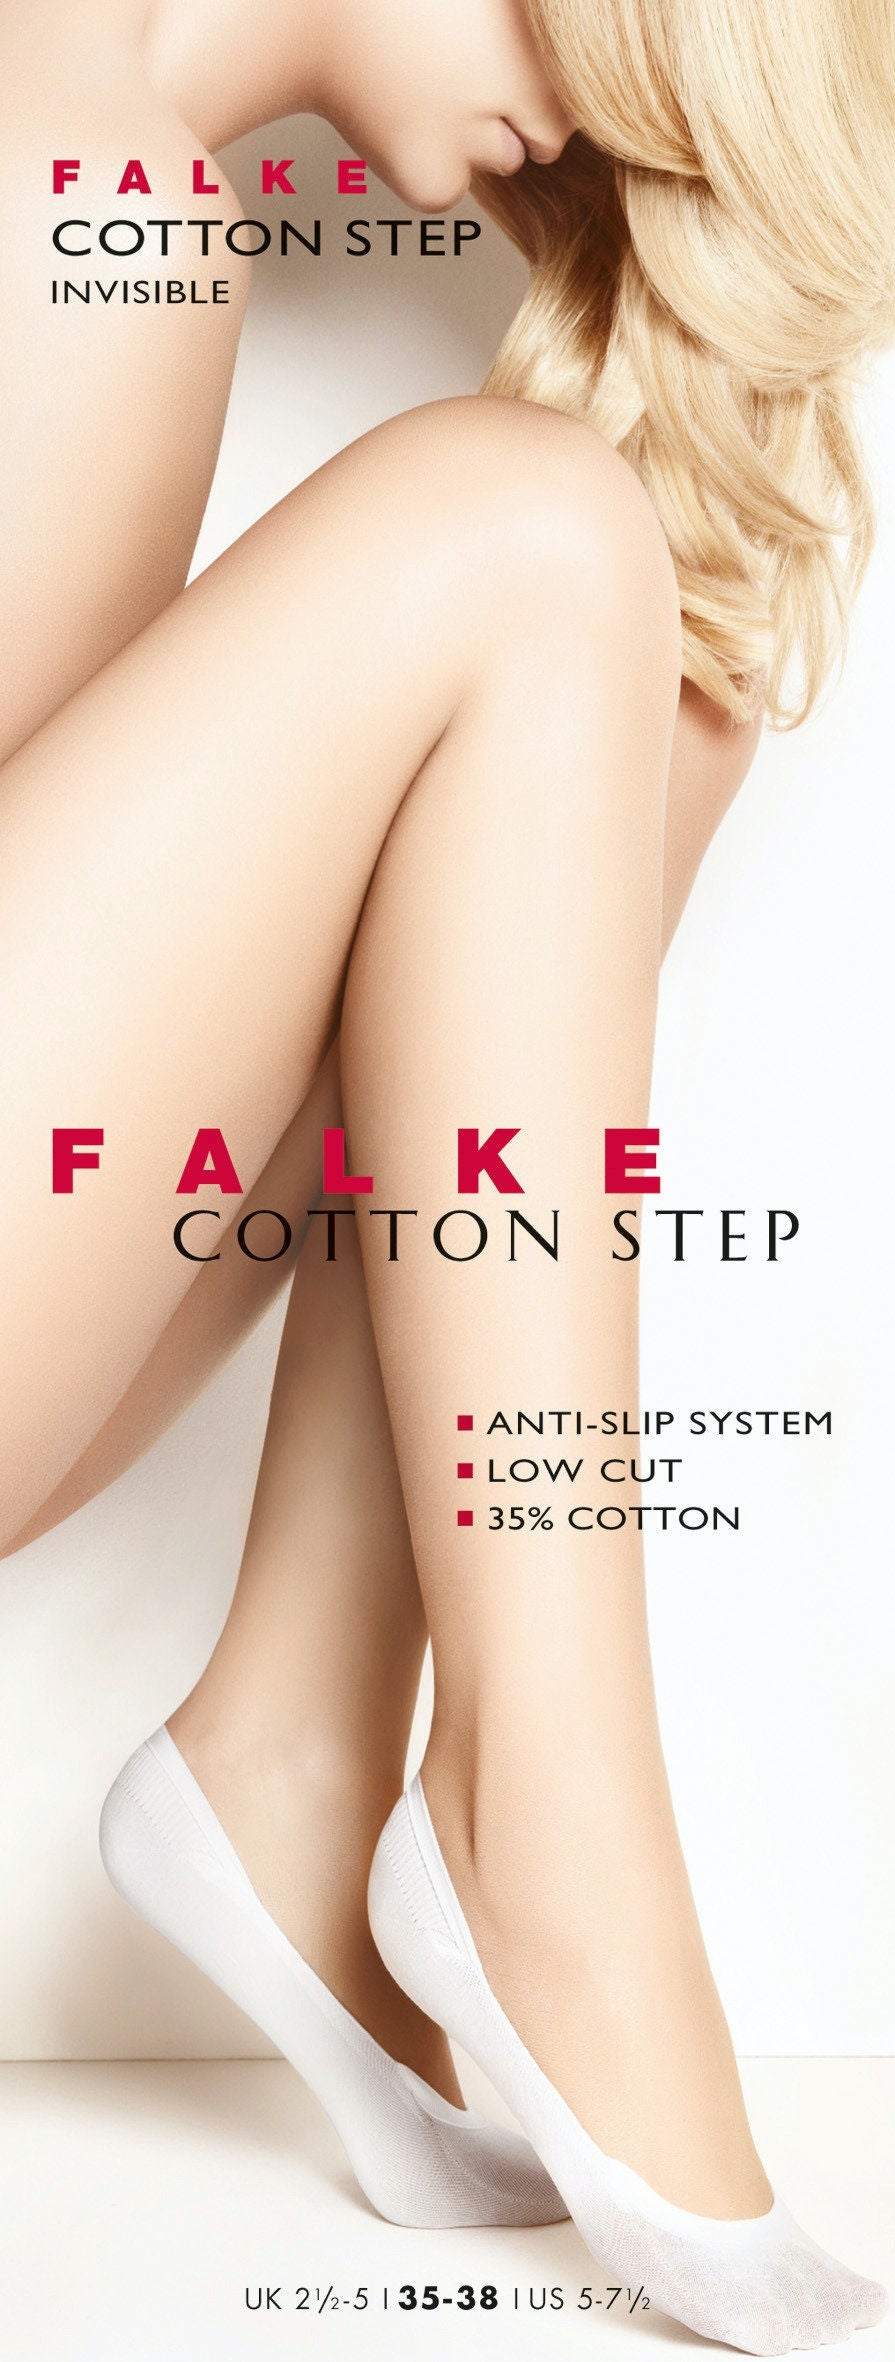 FALKE Cotton Step Invisible Socks